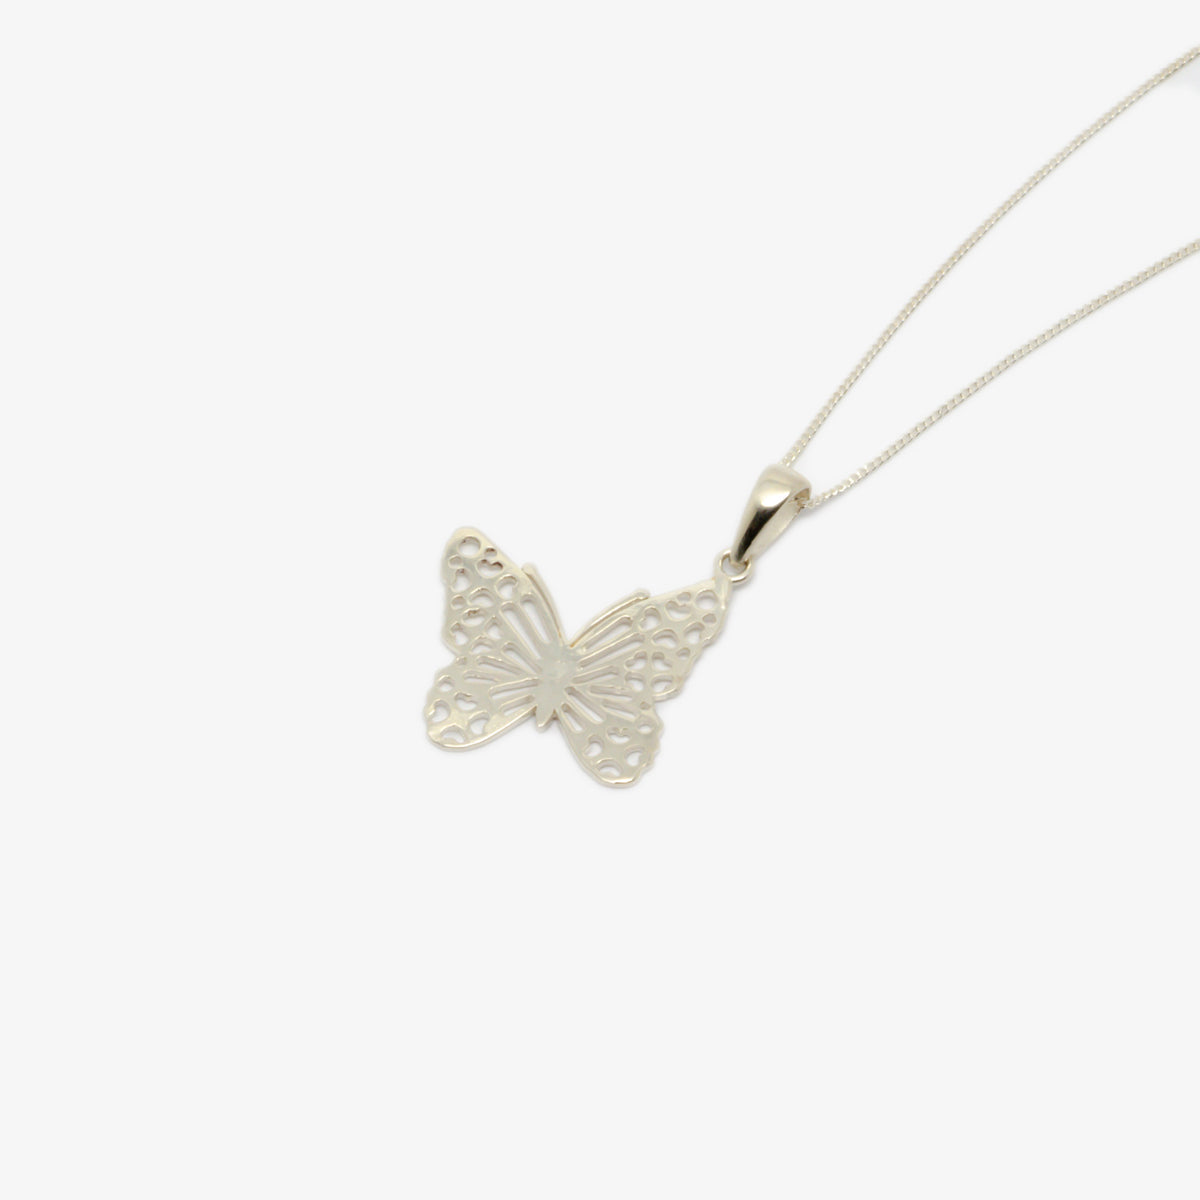 Close-up and on the side picture of the silver butterfly pendant necklace.